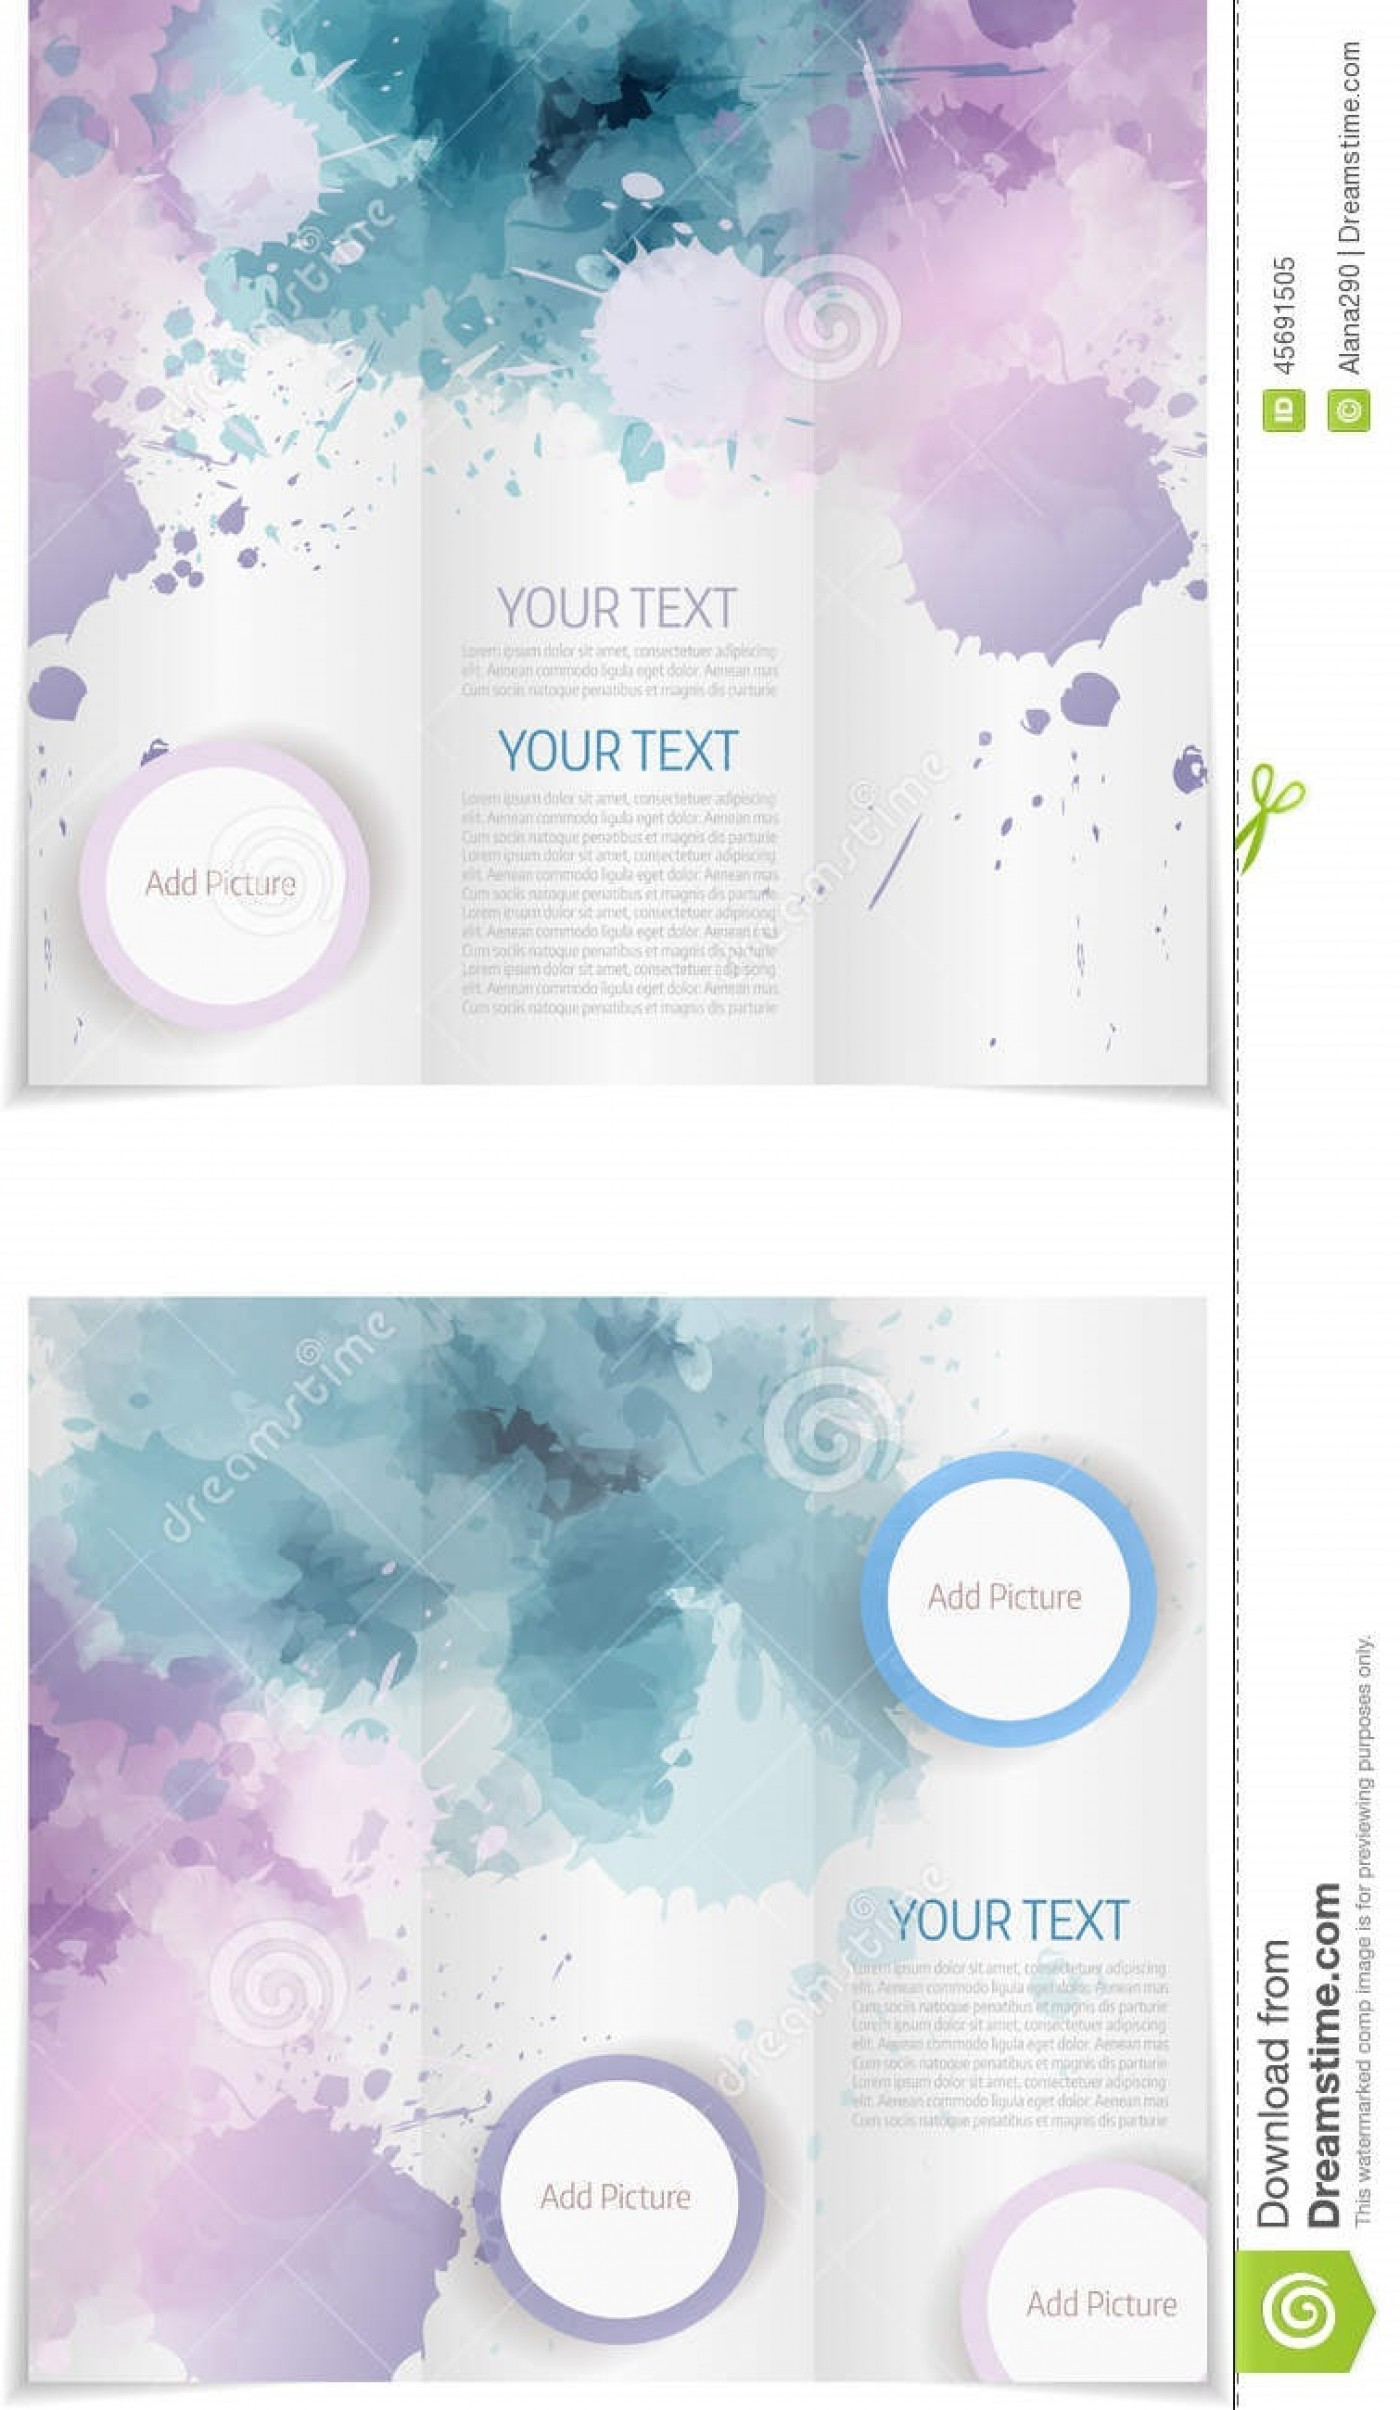 009 Stupendou Publisher Brochure Template Free Inspiration  Tri Fold Download Microsoft M1400